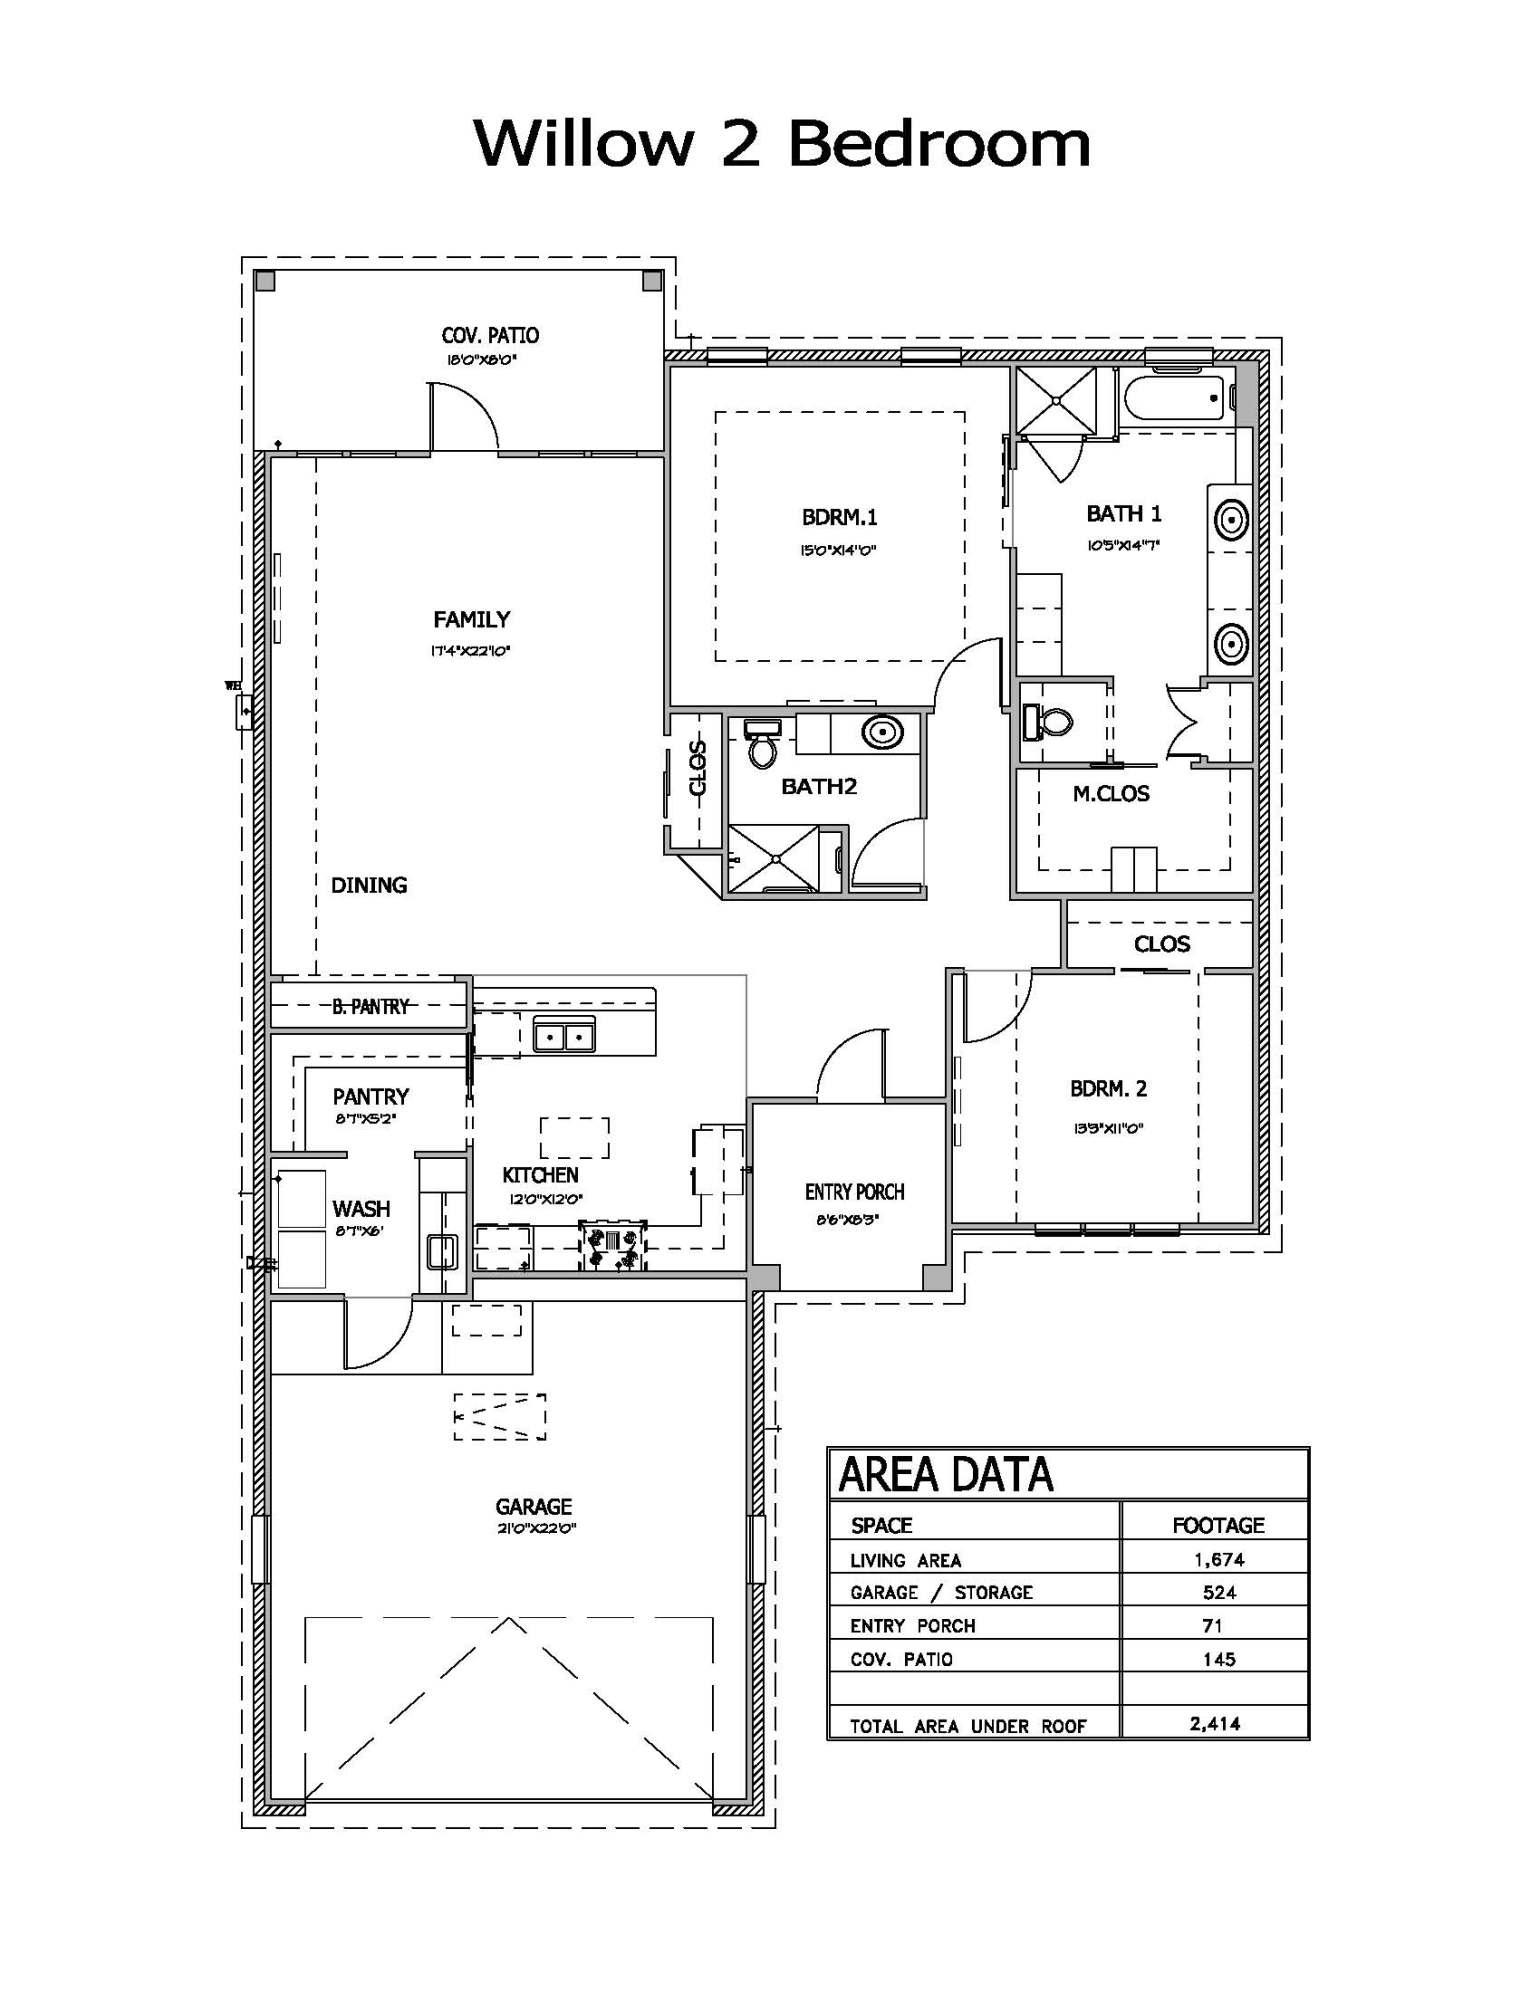 Willow 2 Bedroom Floor plan